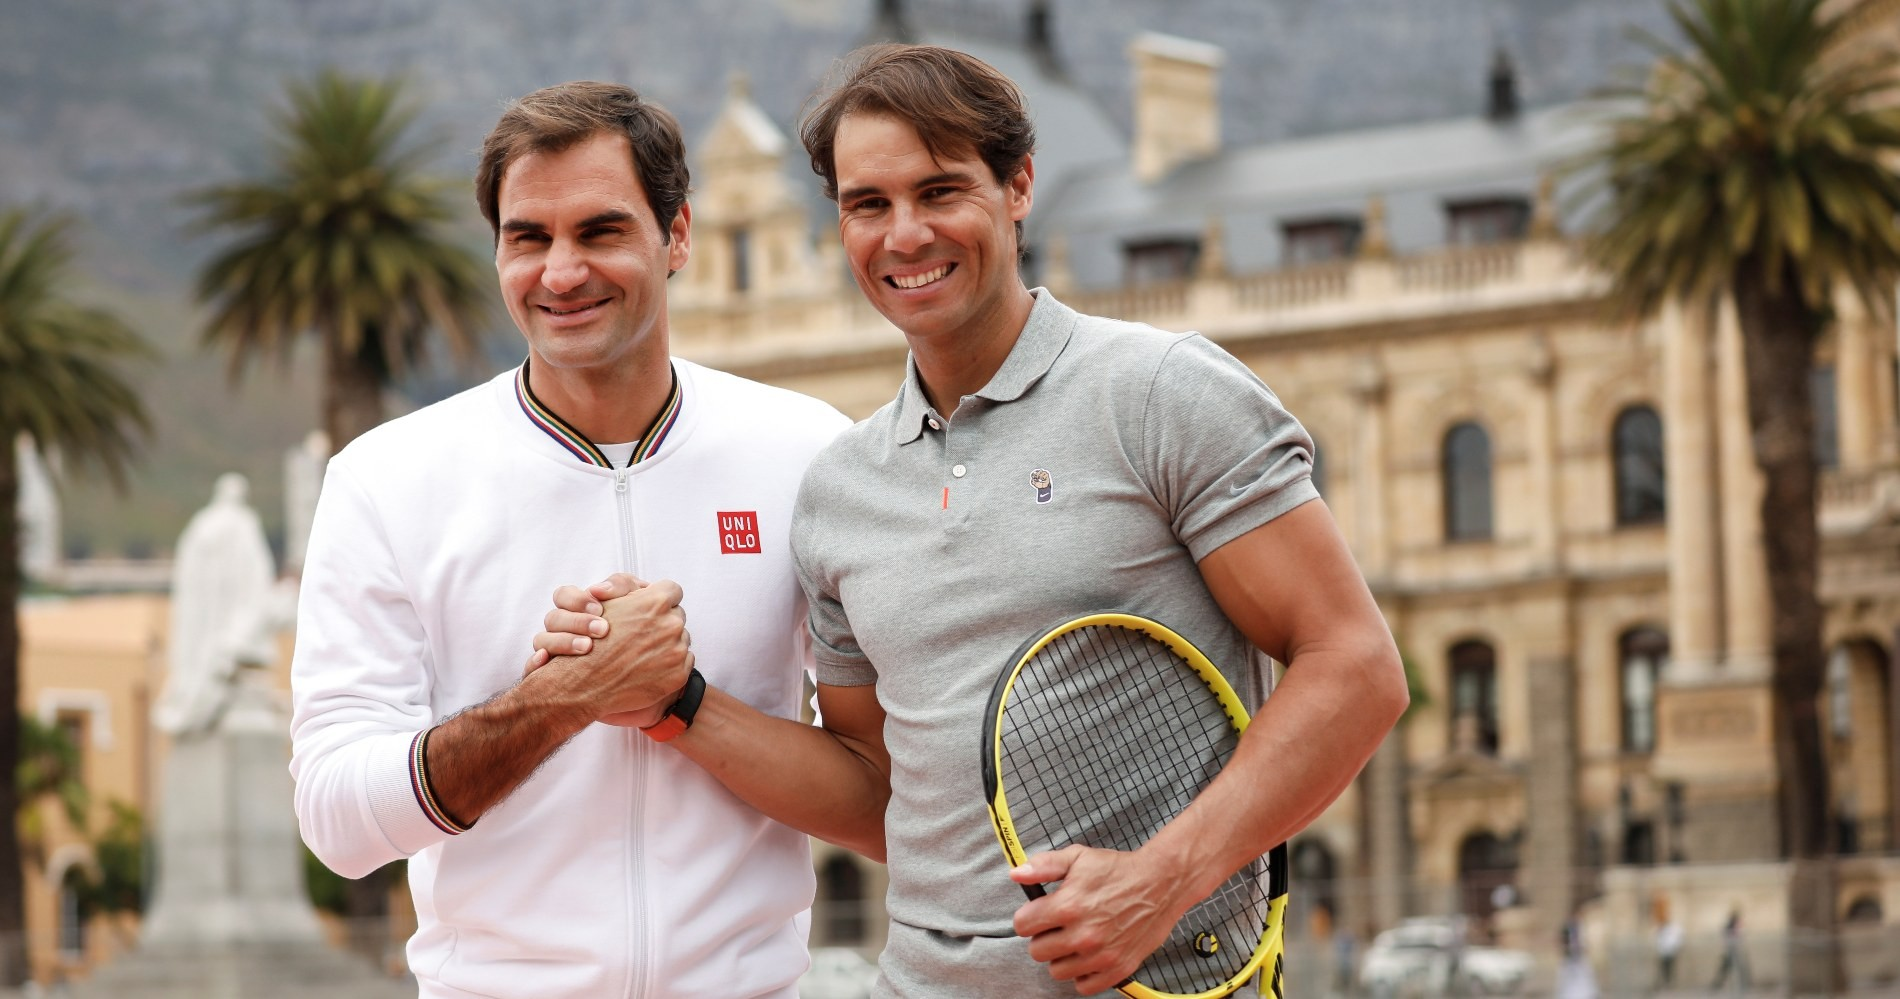 Federer and Nadal, Cap Town, February 2020